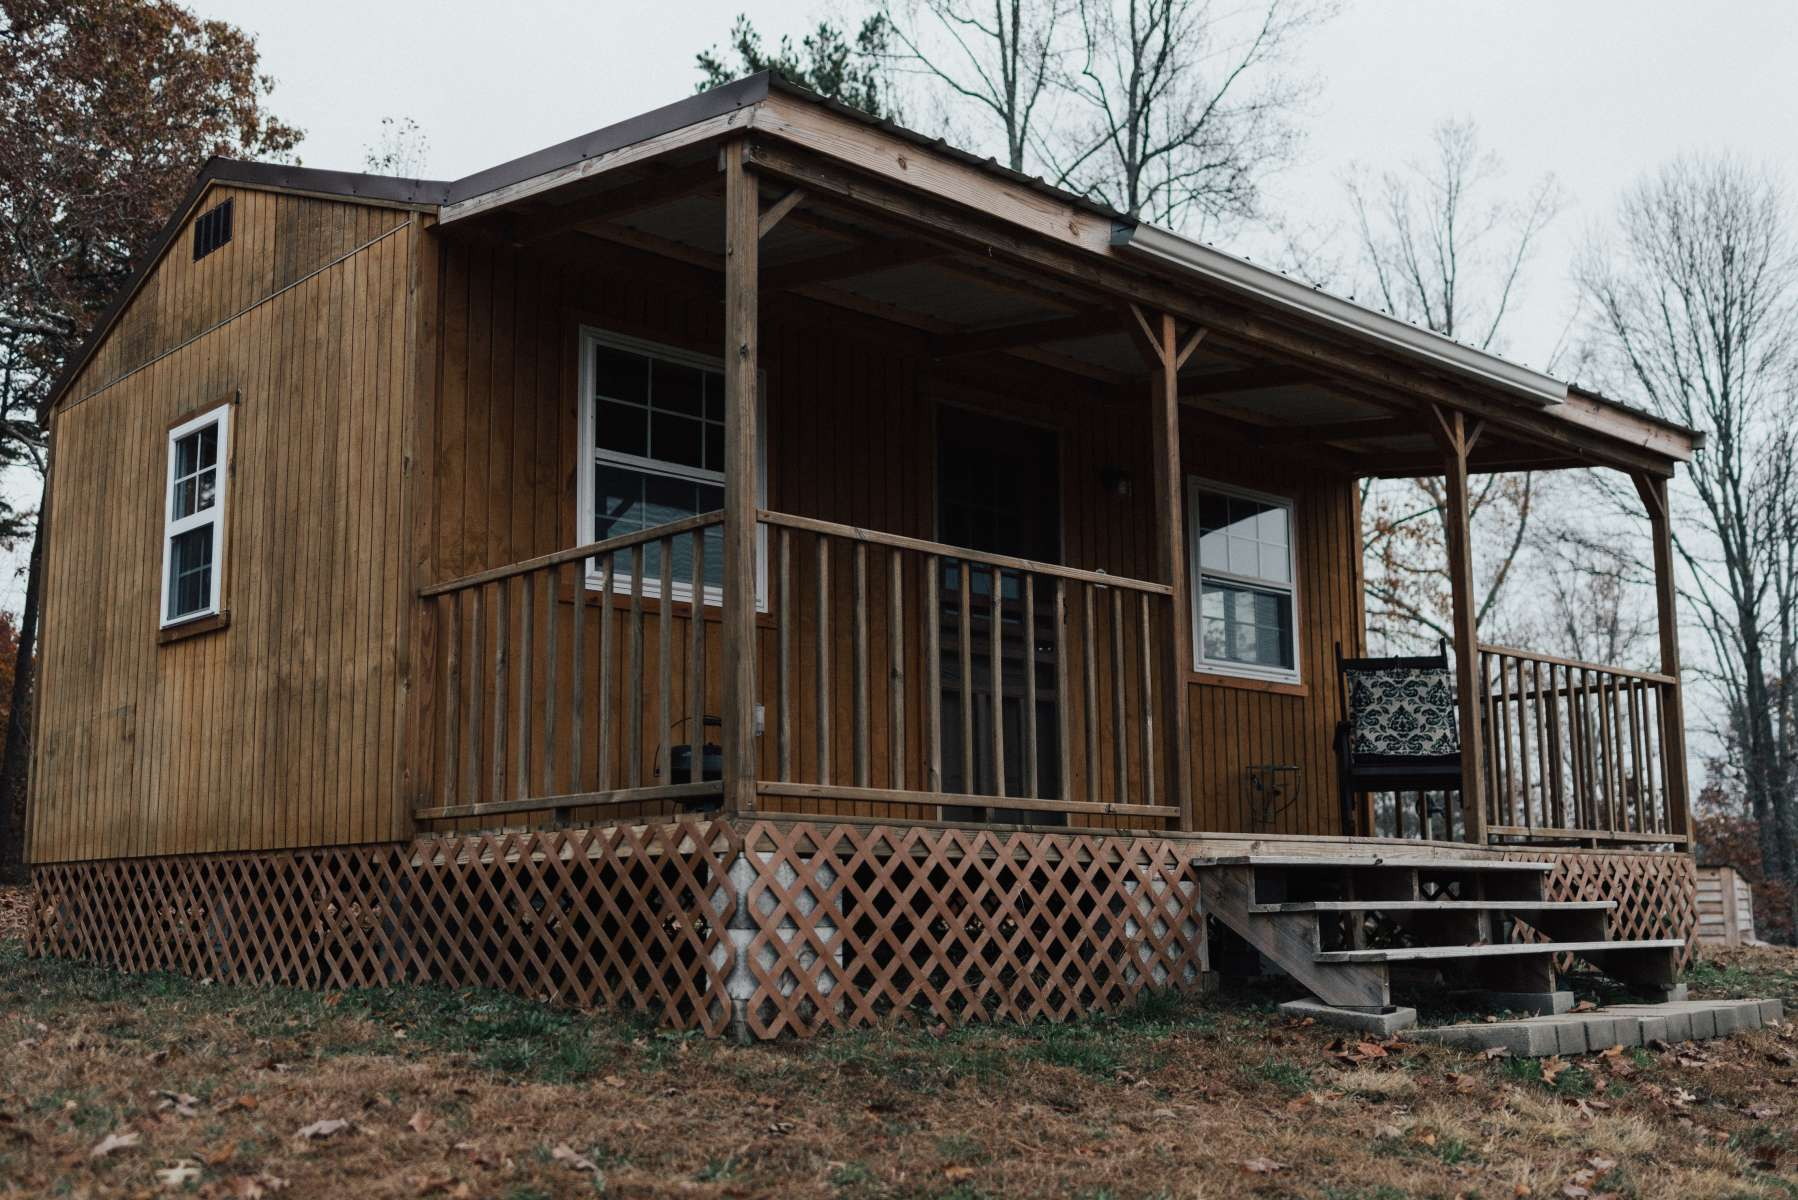 Camping Cabin: Lower Rates!